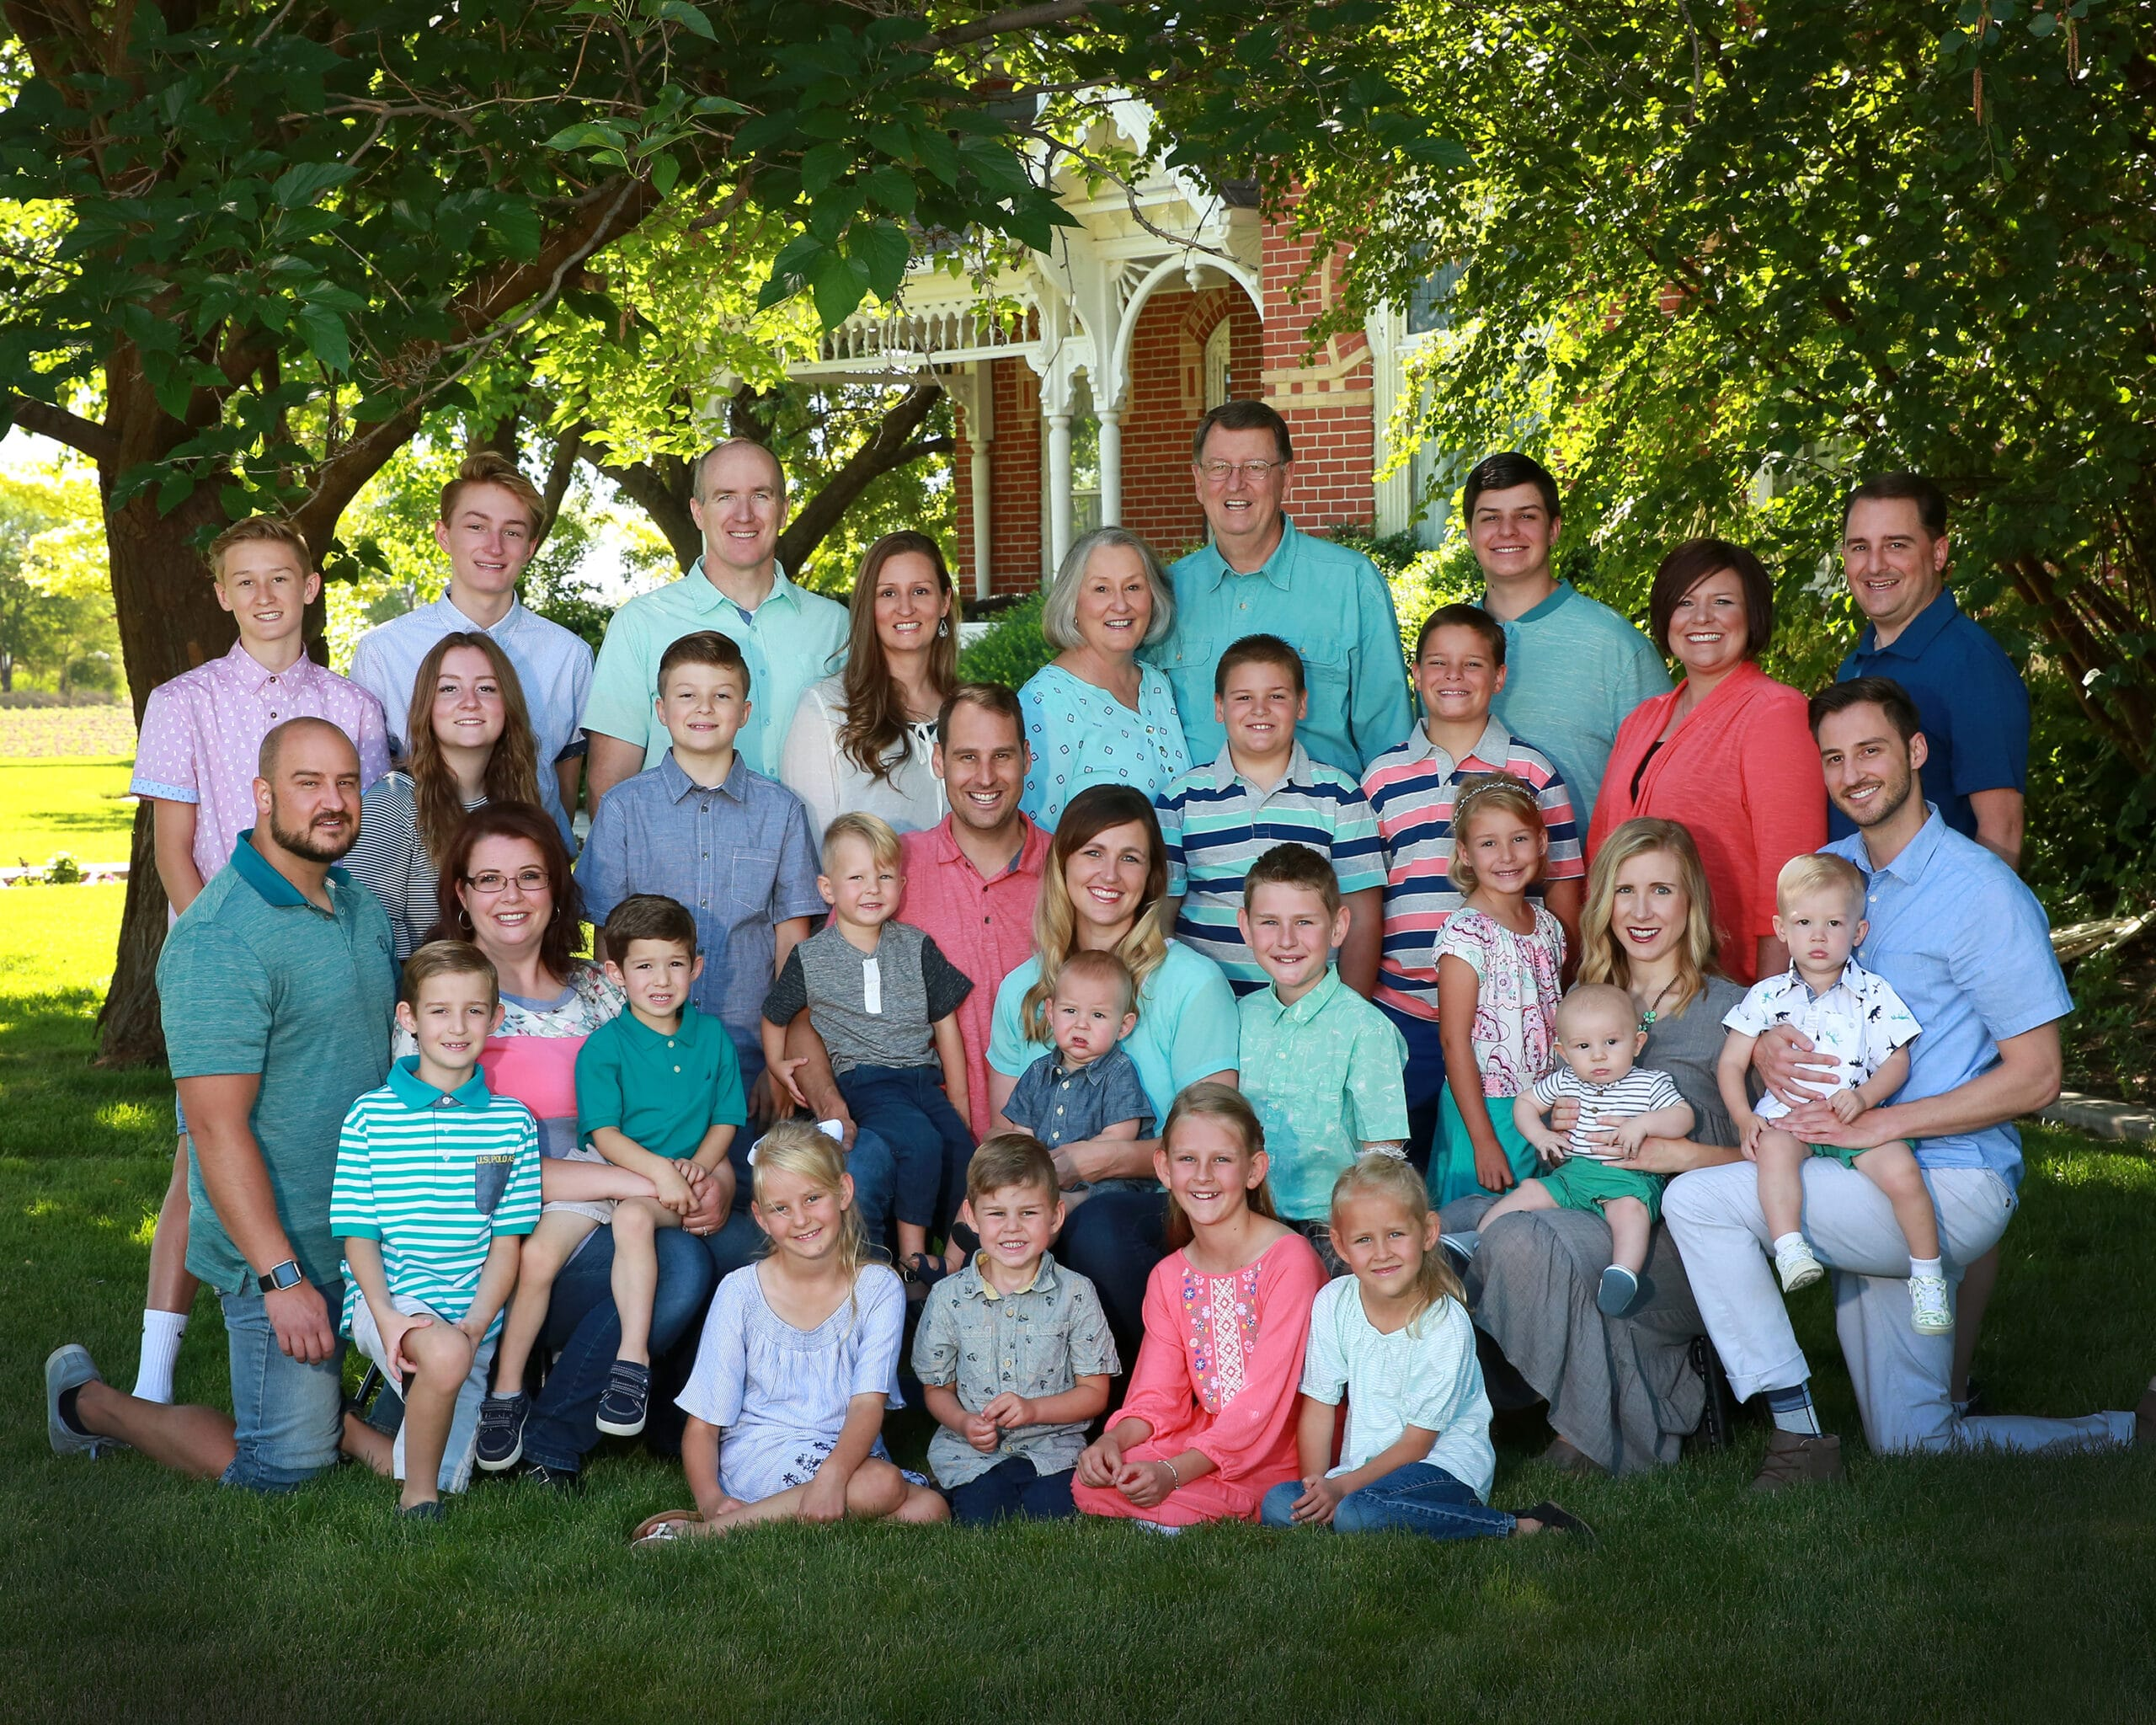 large family group photography utah